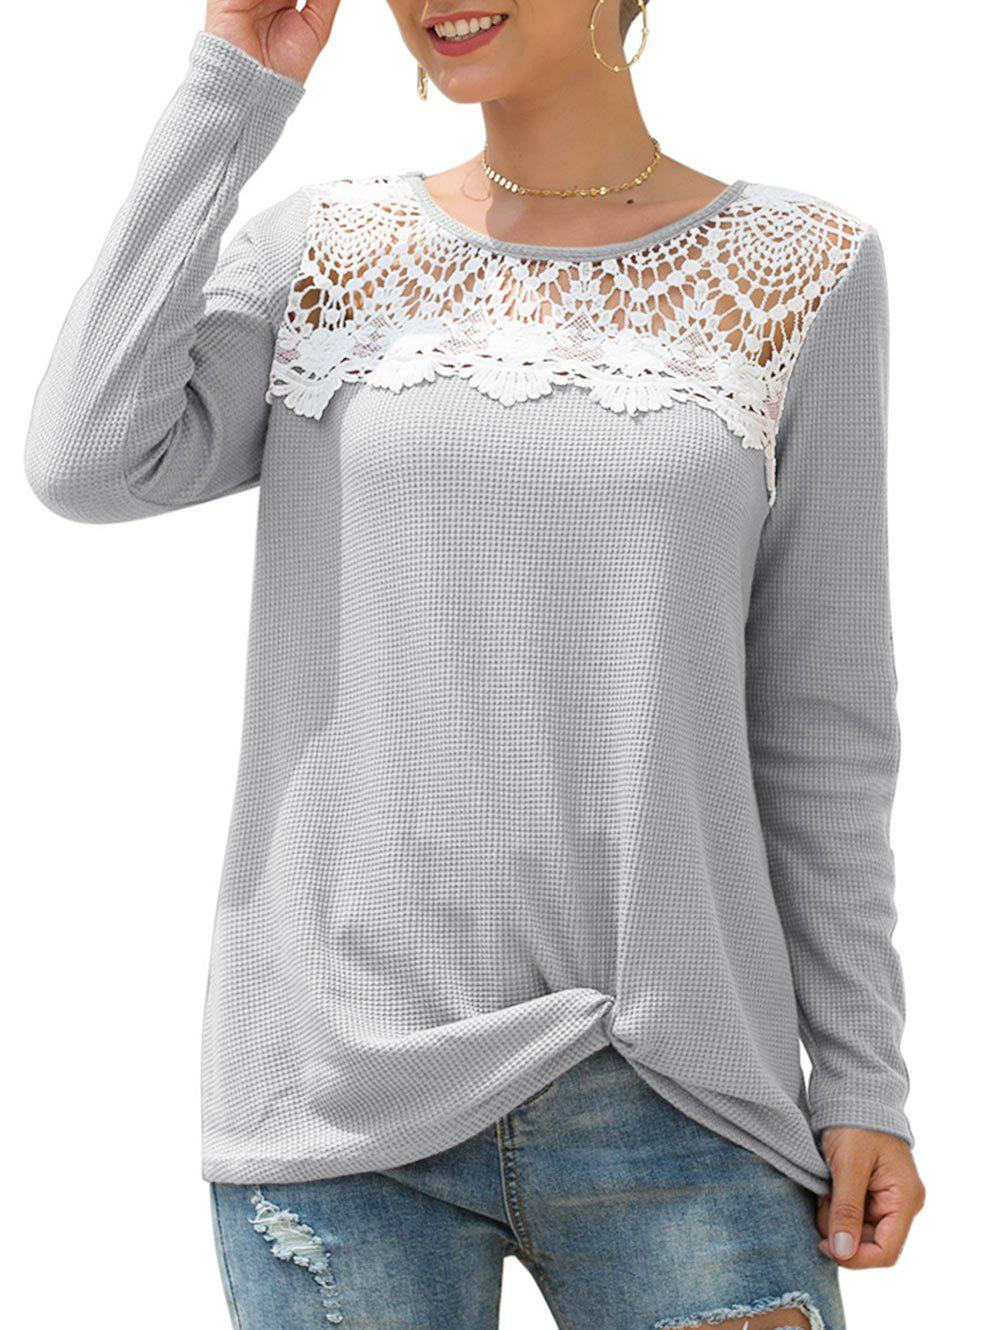 Hot Knitted Crochet Panel Twist Long Sleeve Tee